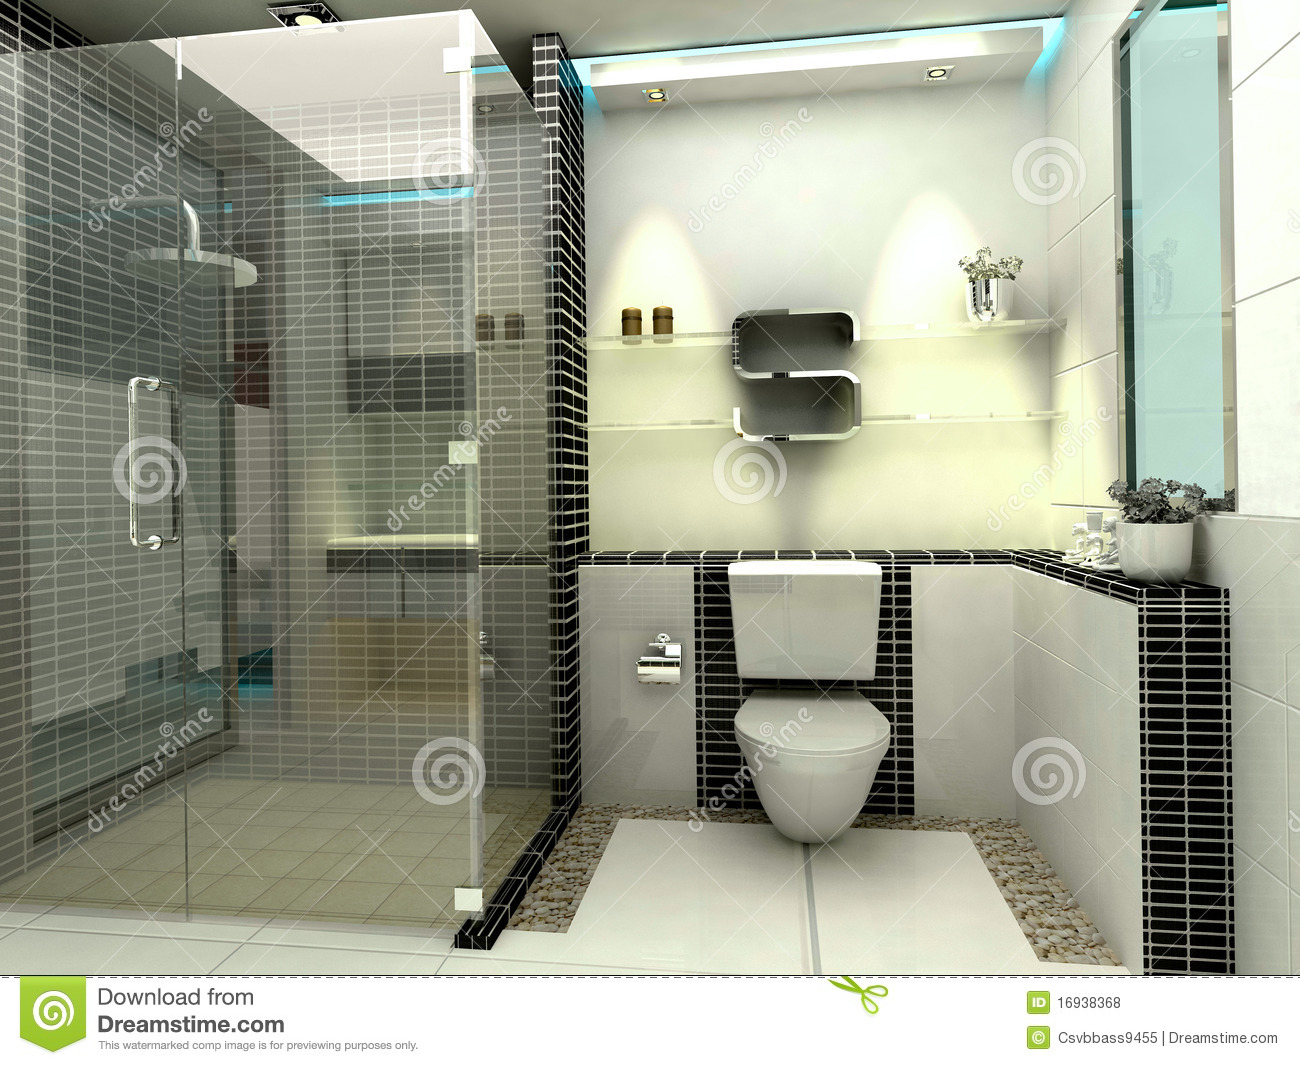 Baño De Lujo Moderno:Modern Luxury Bathroom